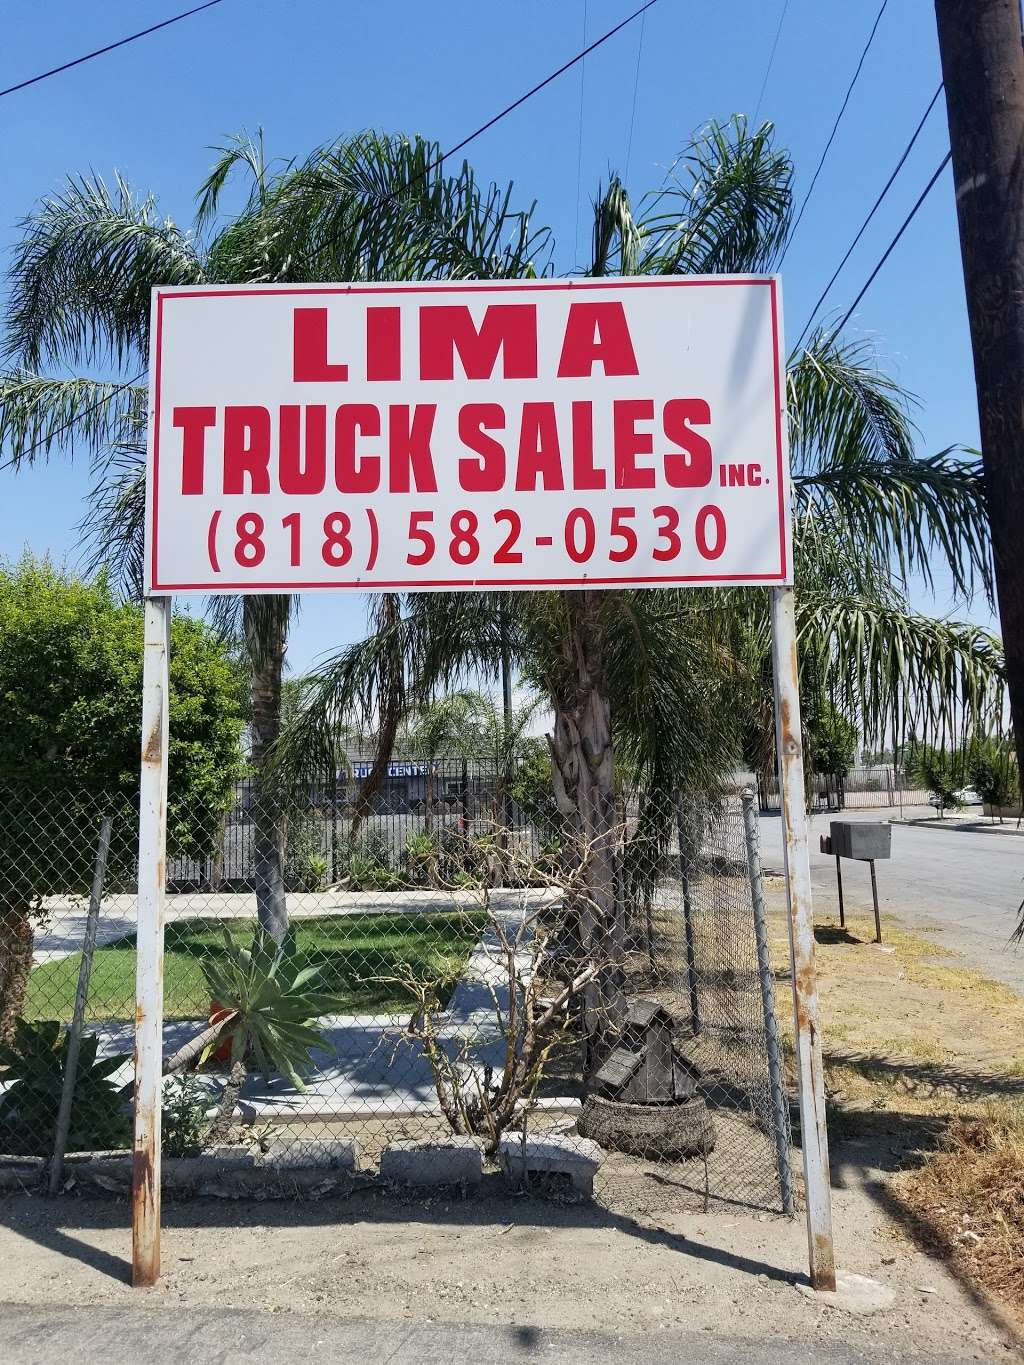 Lima Truck Sales, Inc. - store  | Photo 1 of 1 | Address: 15264 Boyle Ave, Fontana, CA 92337, USA | Phone: (818) 582-0530